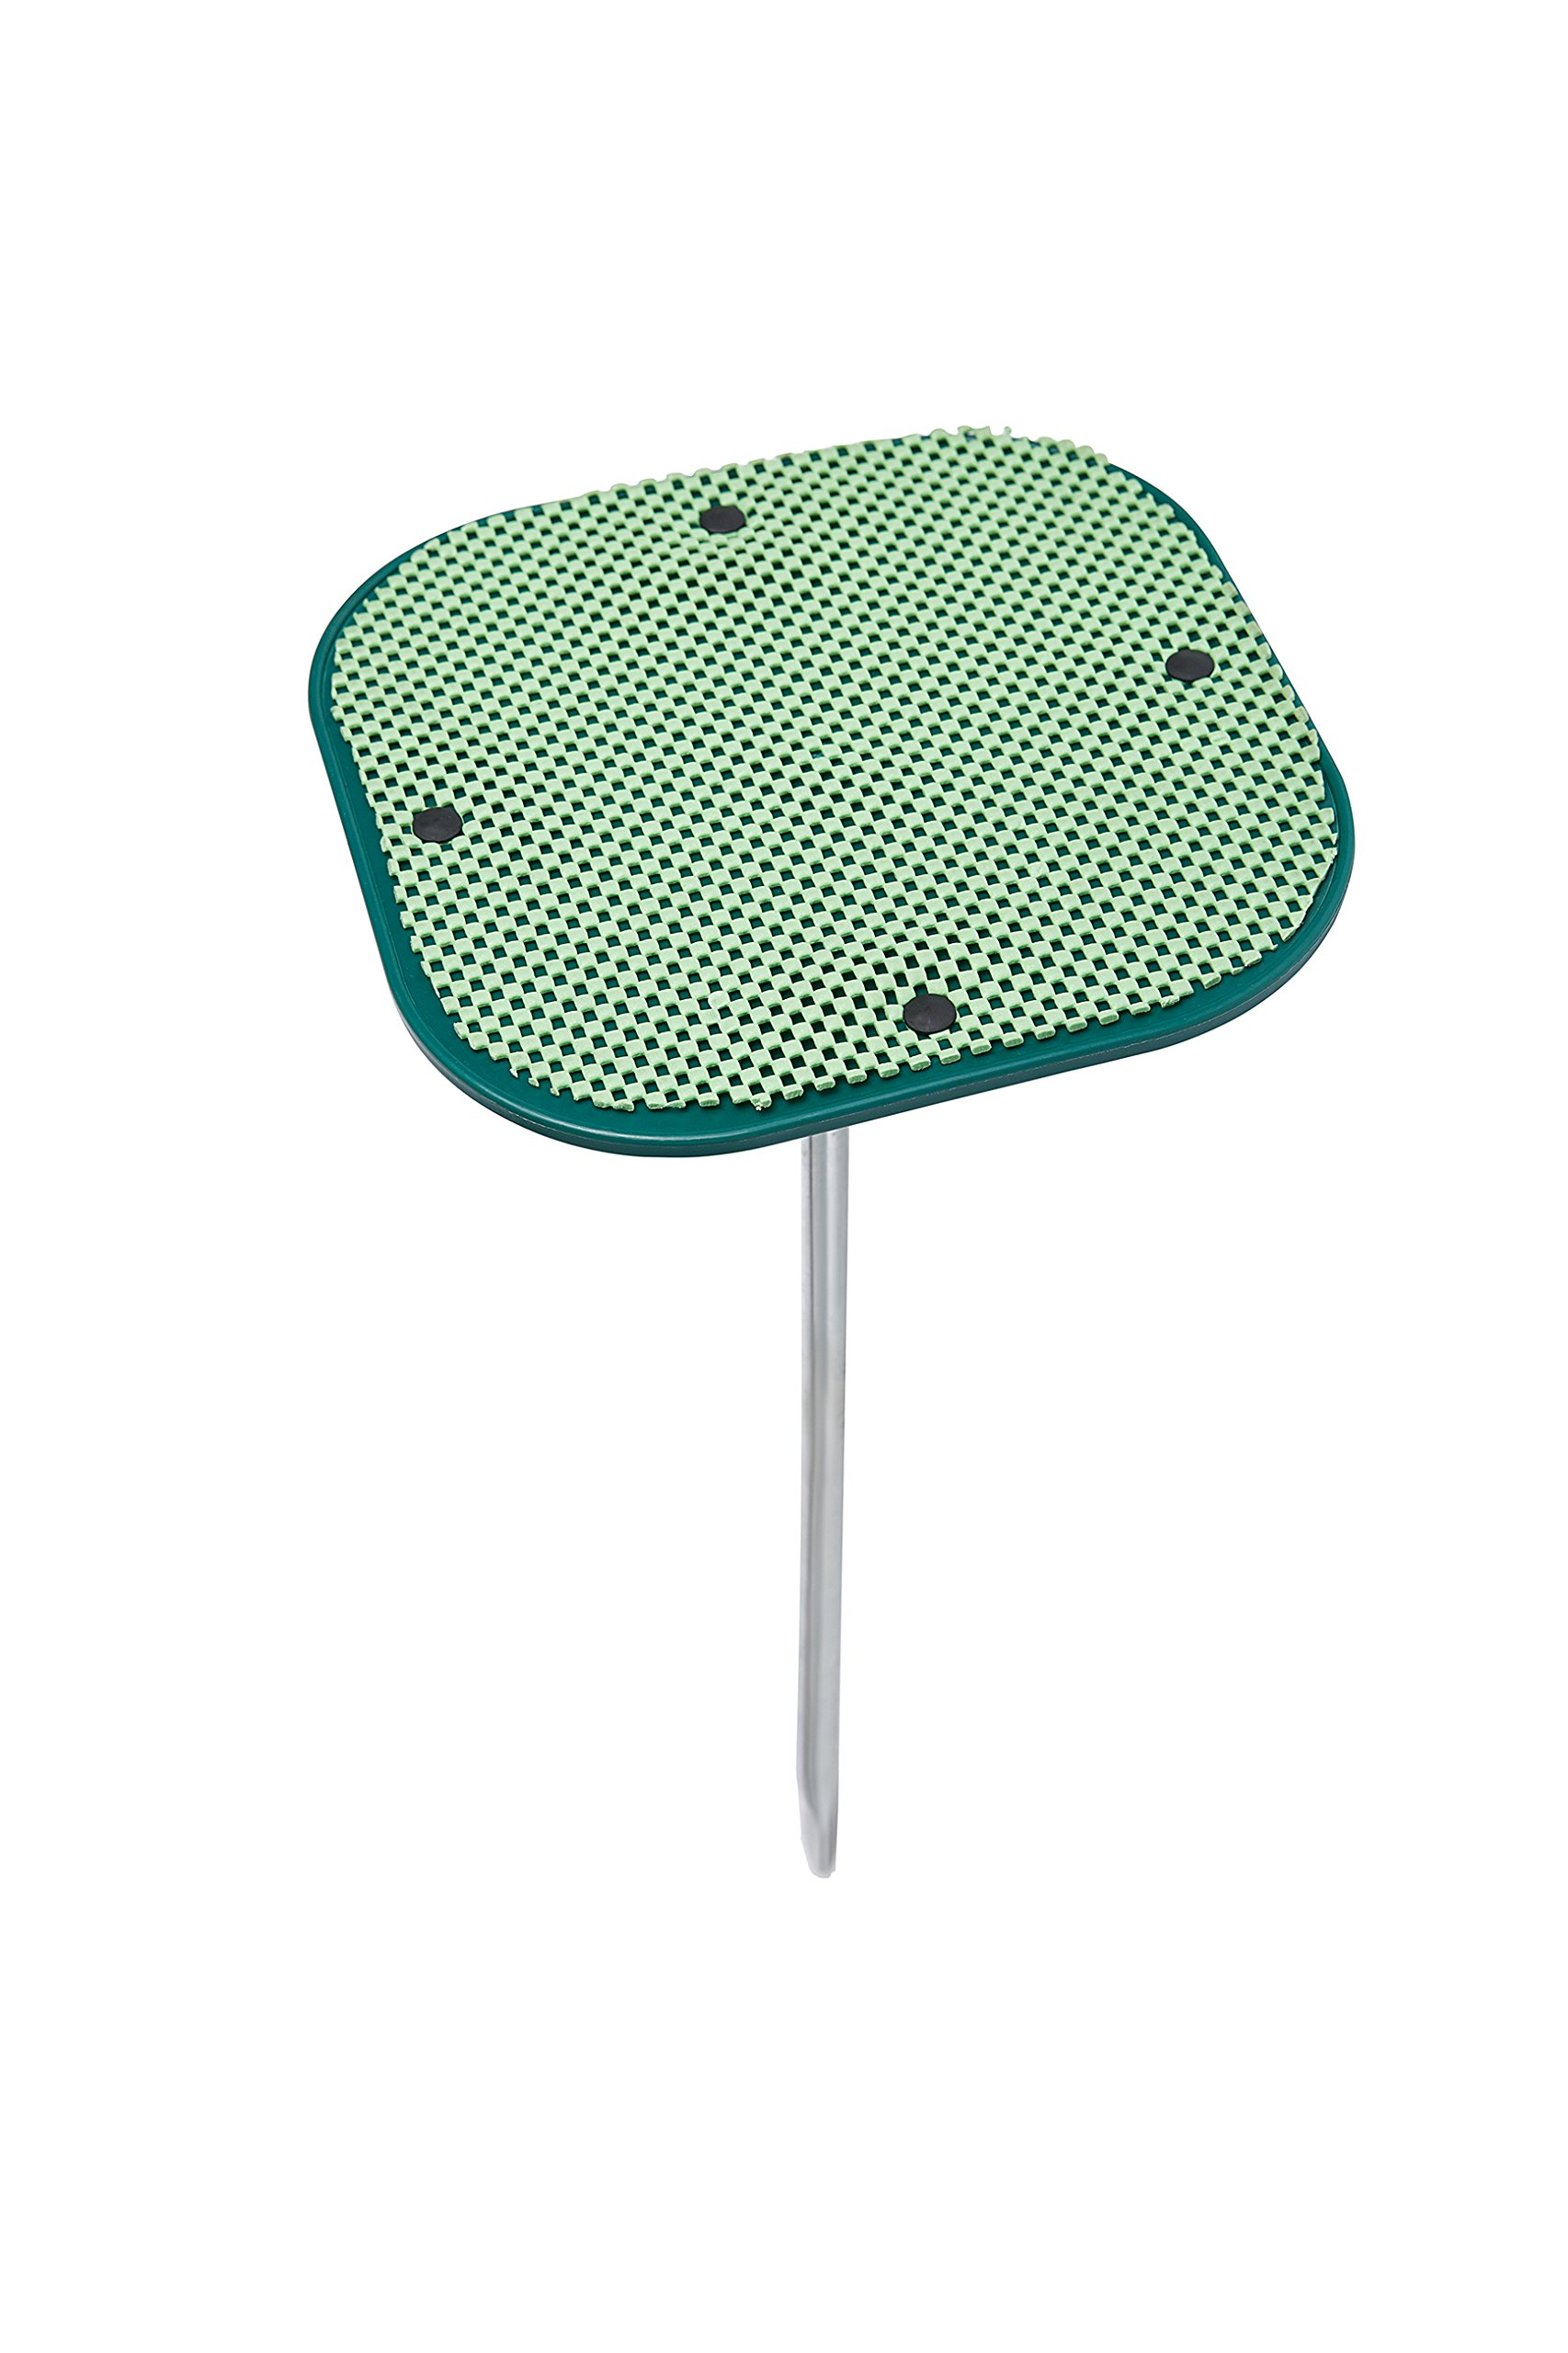 WeJoy Portable Outdoor Beach Table with No-Slip Surface Prevents Spills and Slips